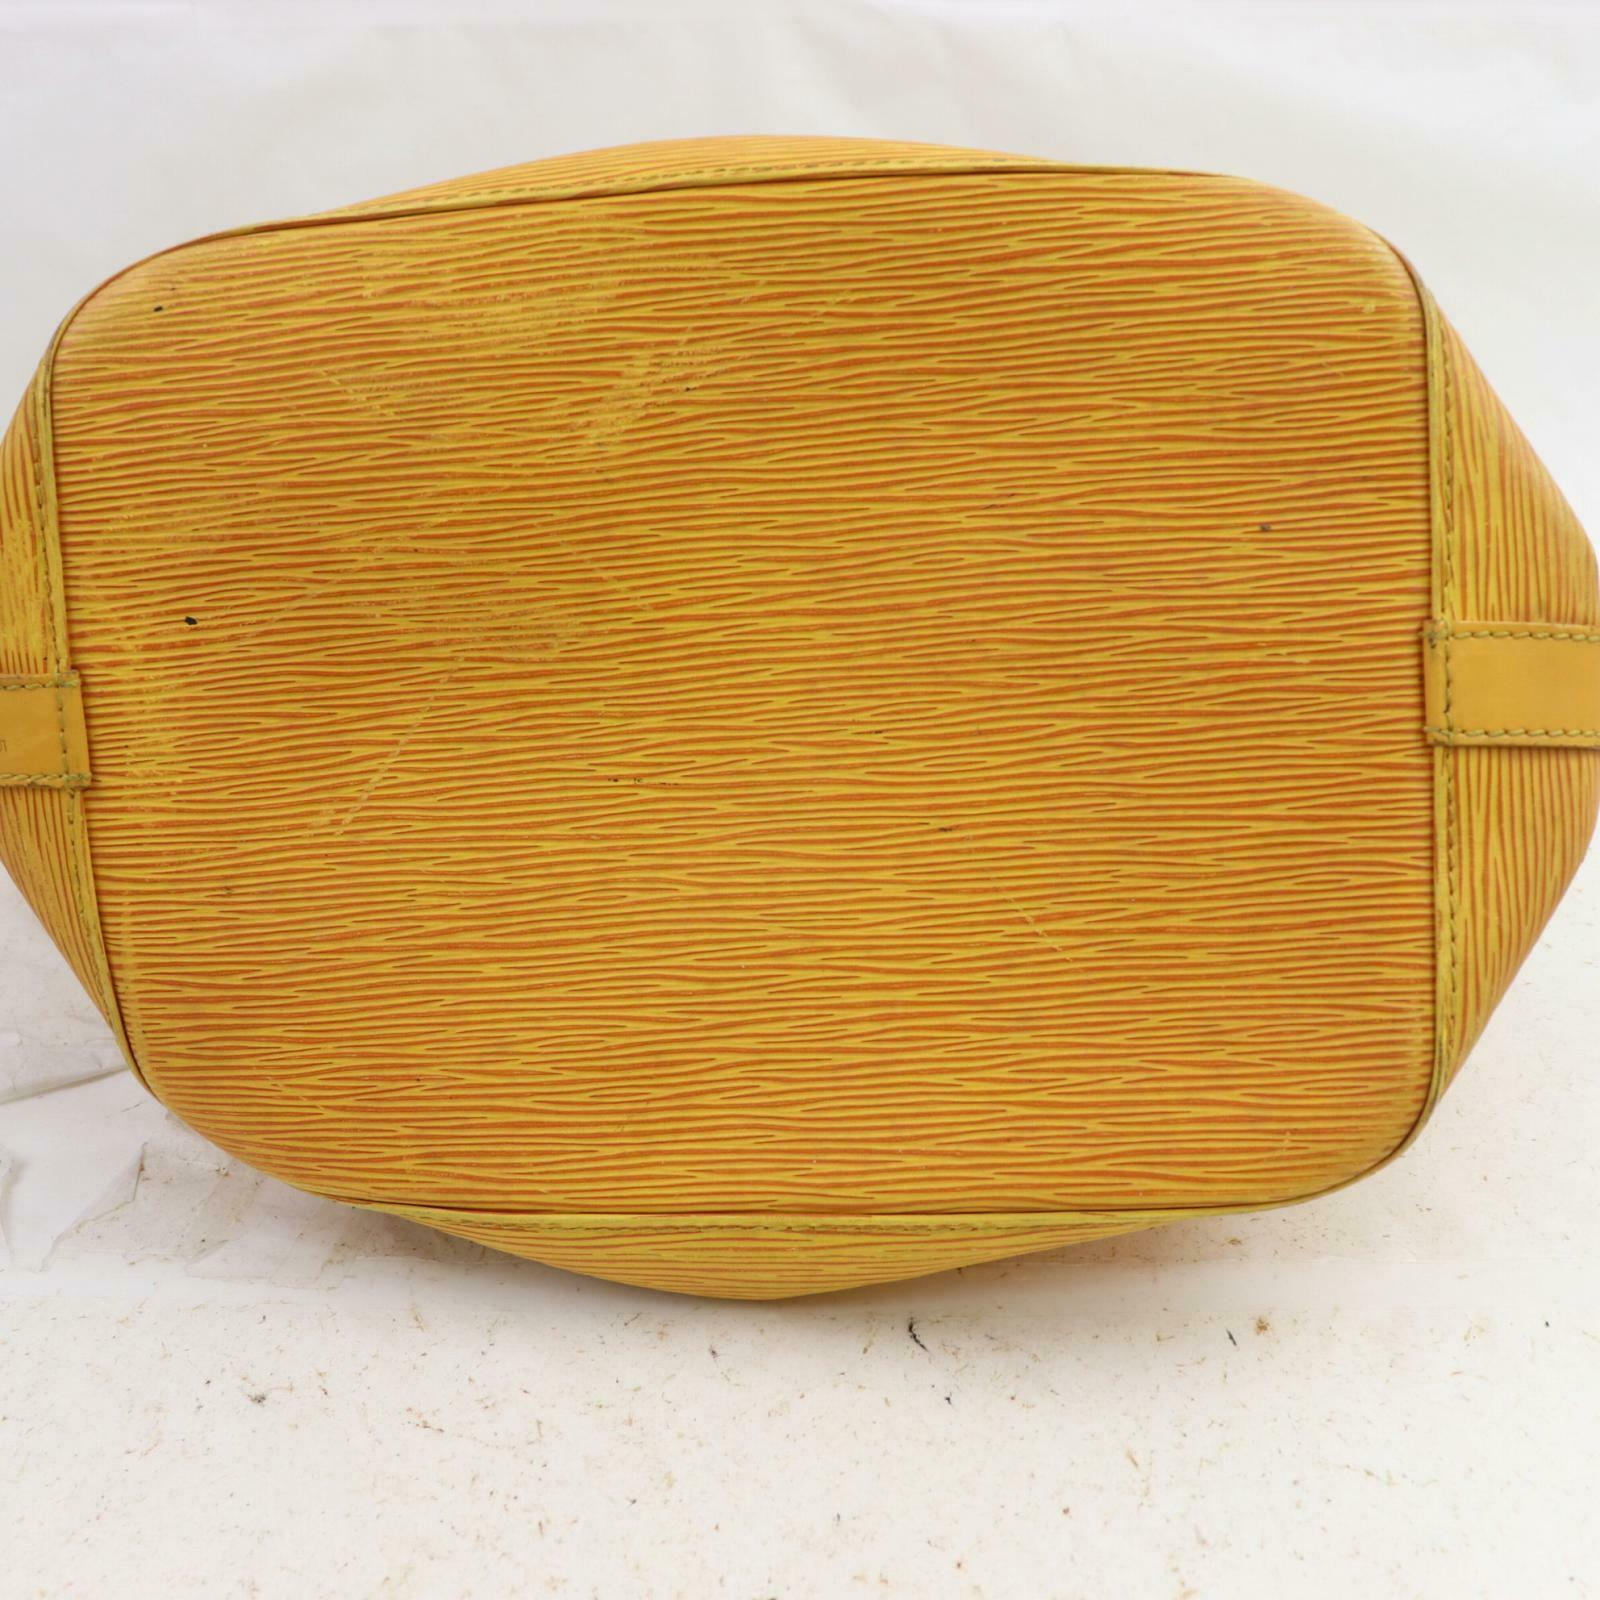 Louis Vuitton Petit Noe M44109  Yellow Epi Shoulder Bag 11311